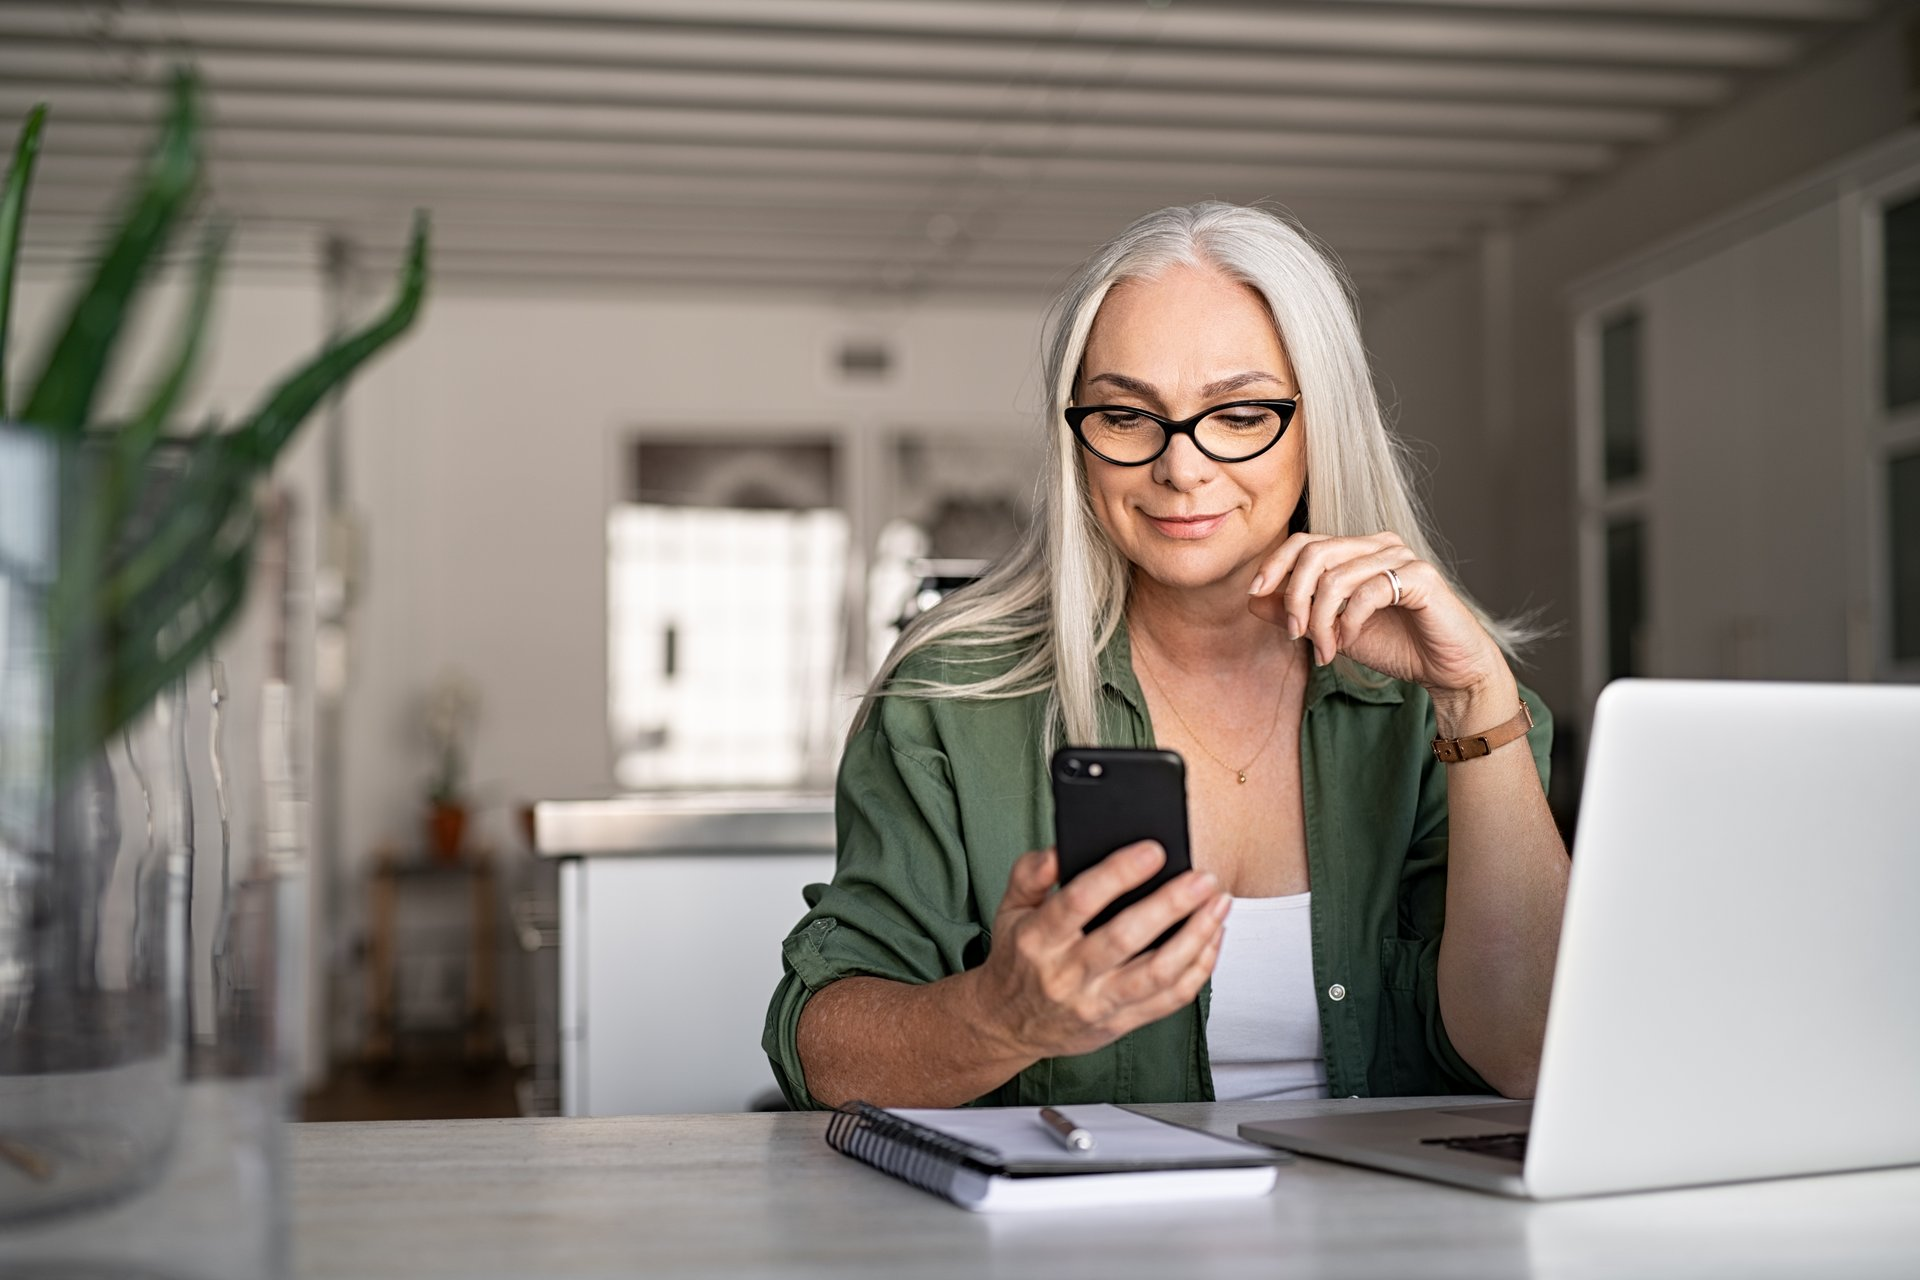 Woman using two-factor authentication